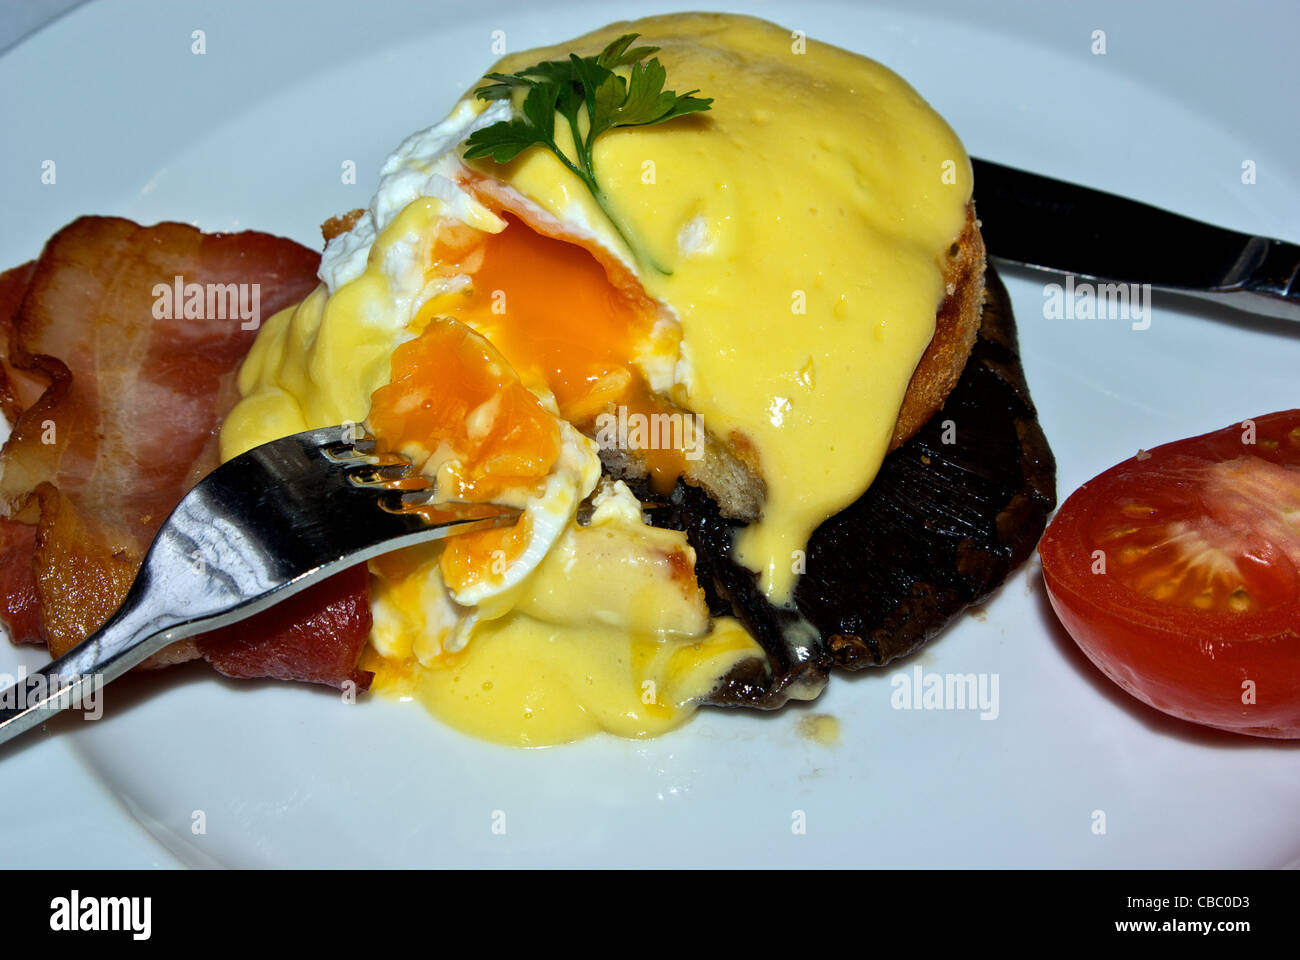 Eggs Benedict Breakfast Bacon Egg Bernaise Sauce Toasted English